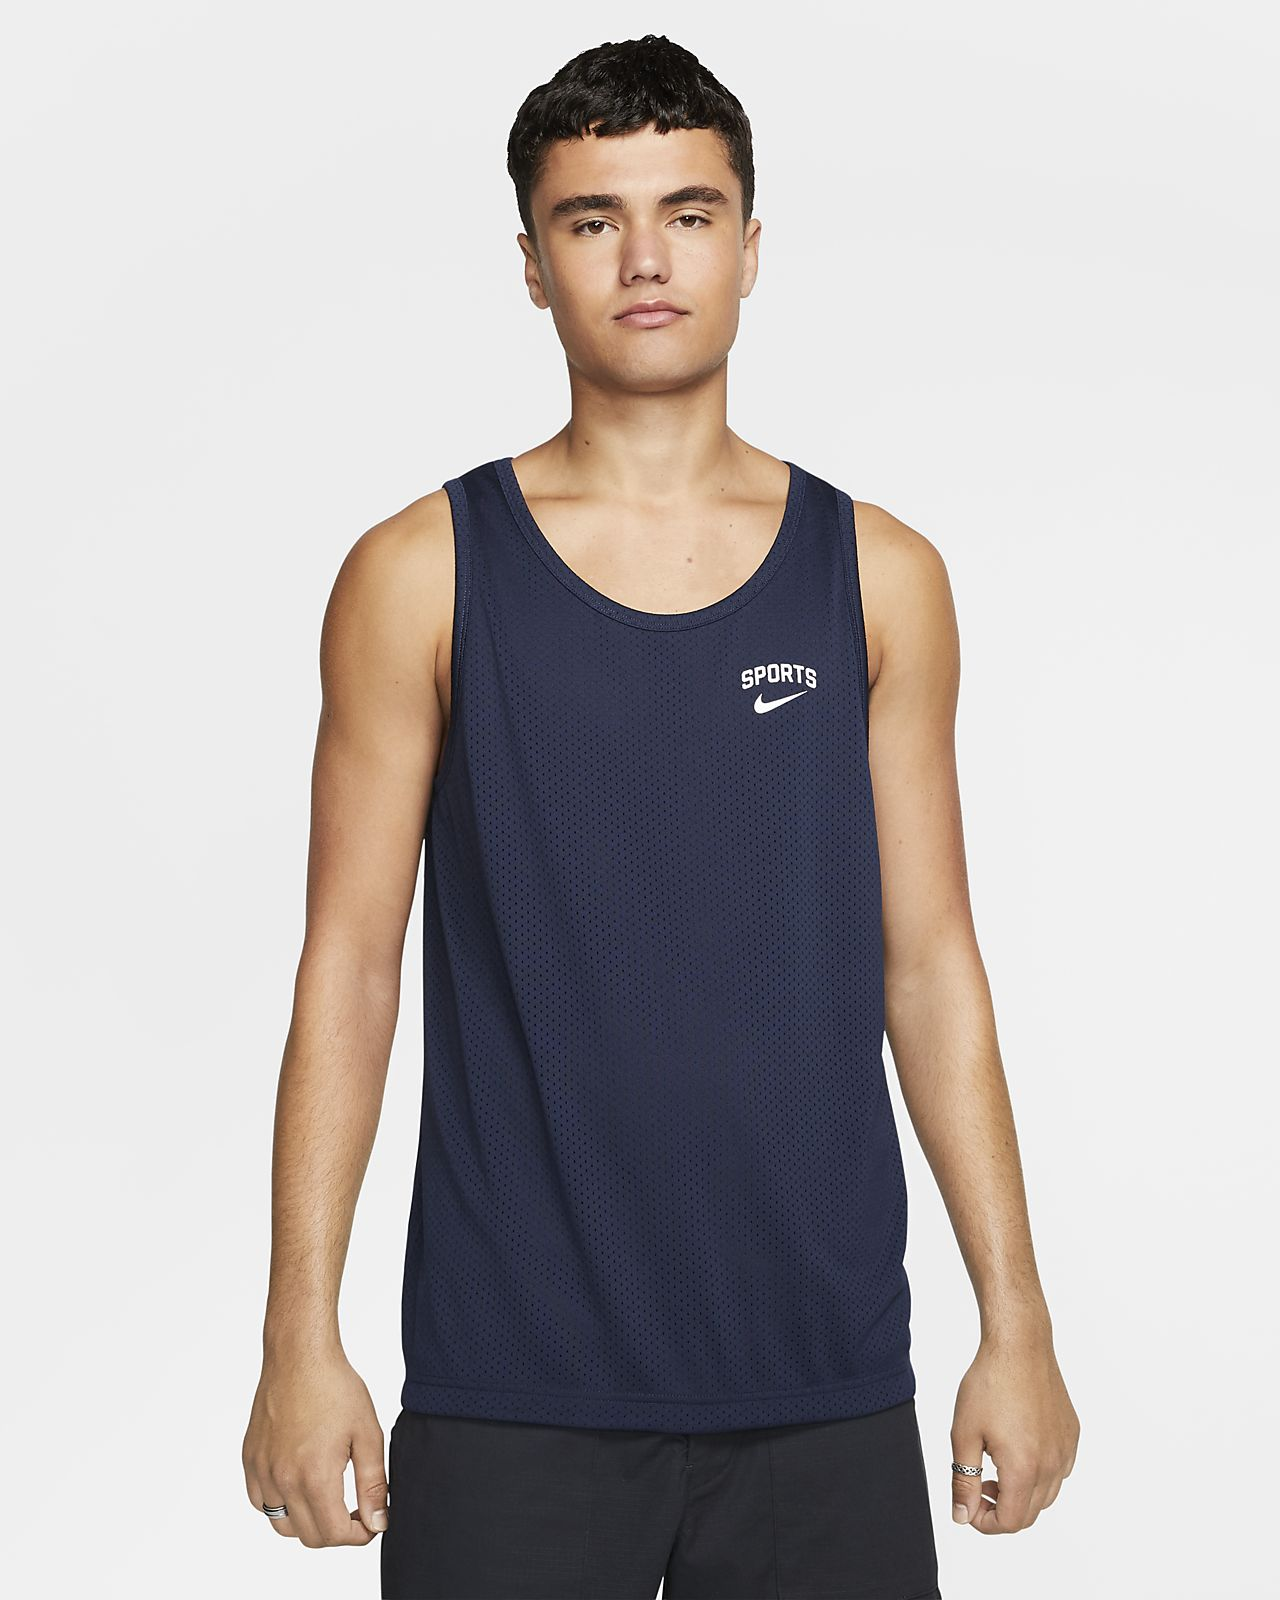 Nike SB Dri-FIT Men's Printed Skate Tank